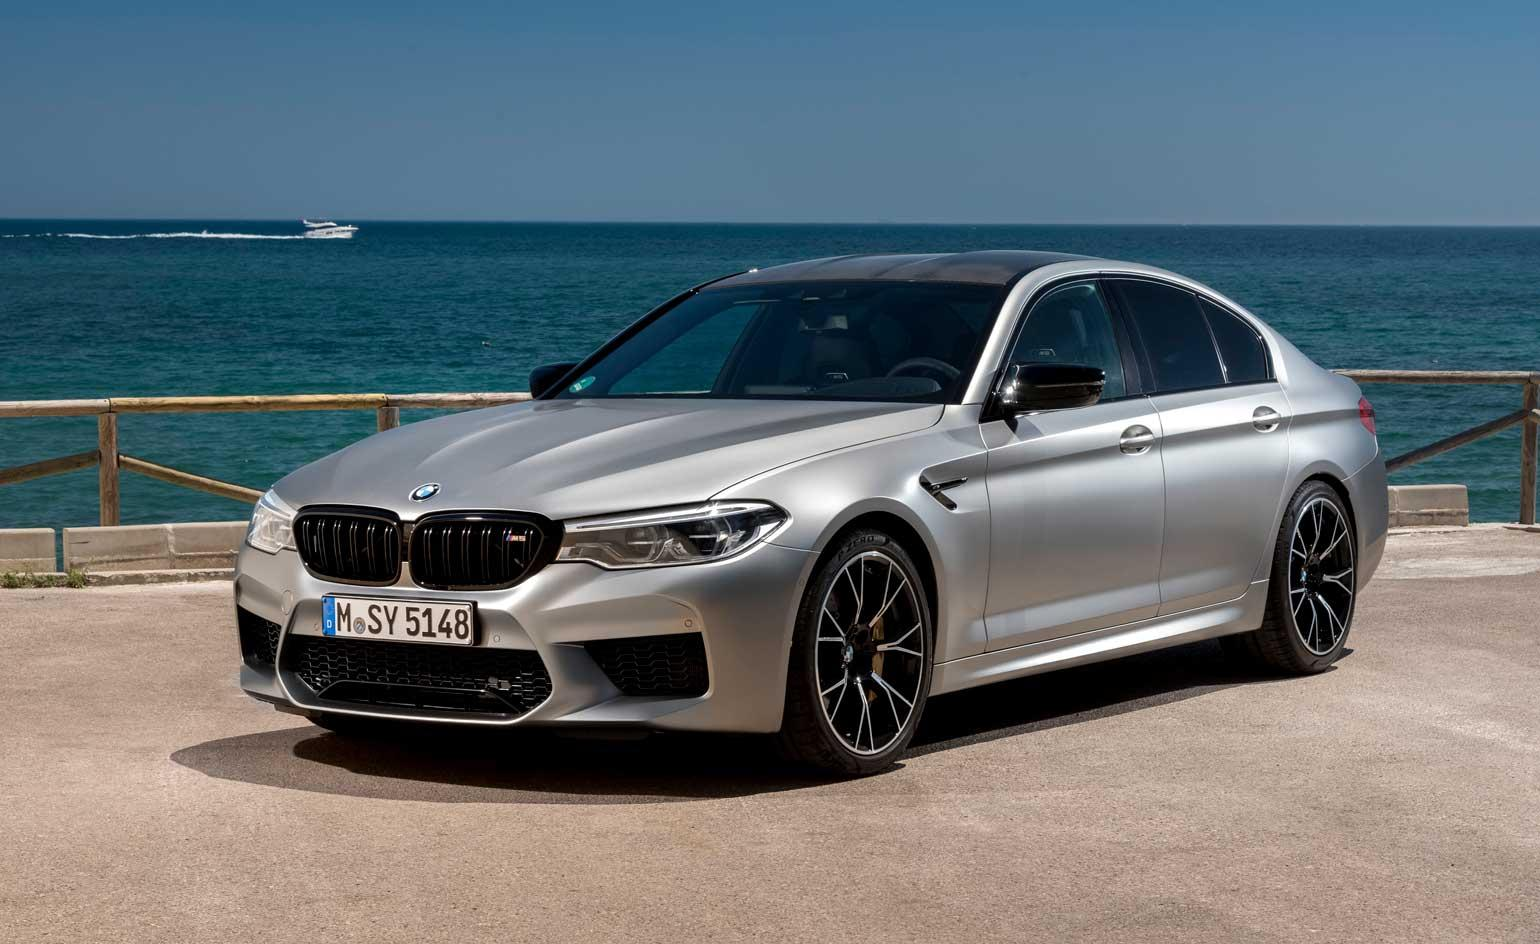 BMW M5 Competition 2018 review | Wallpaper*